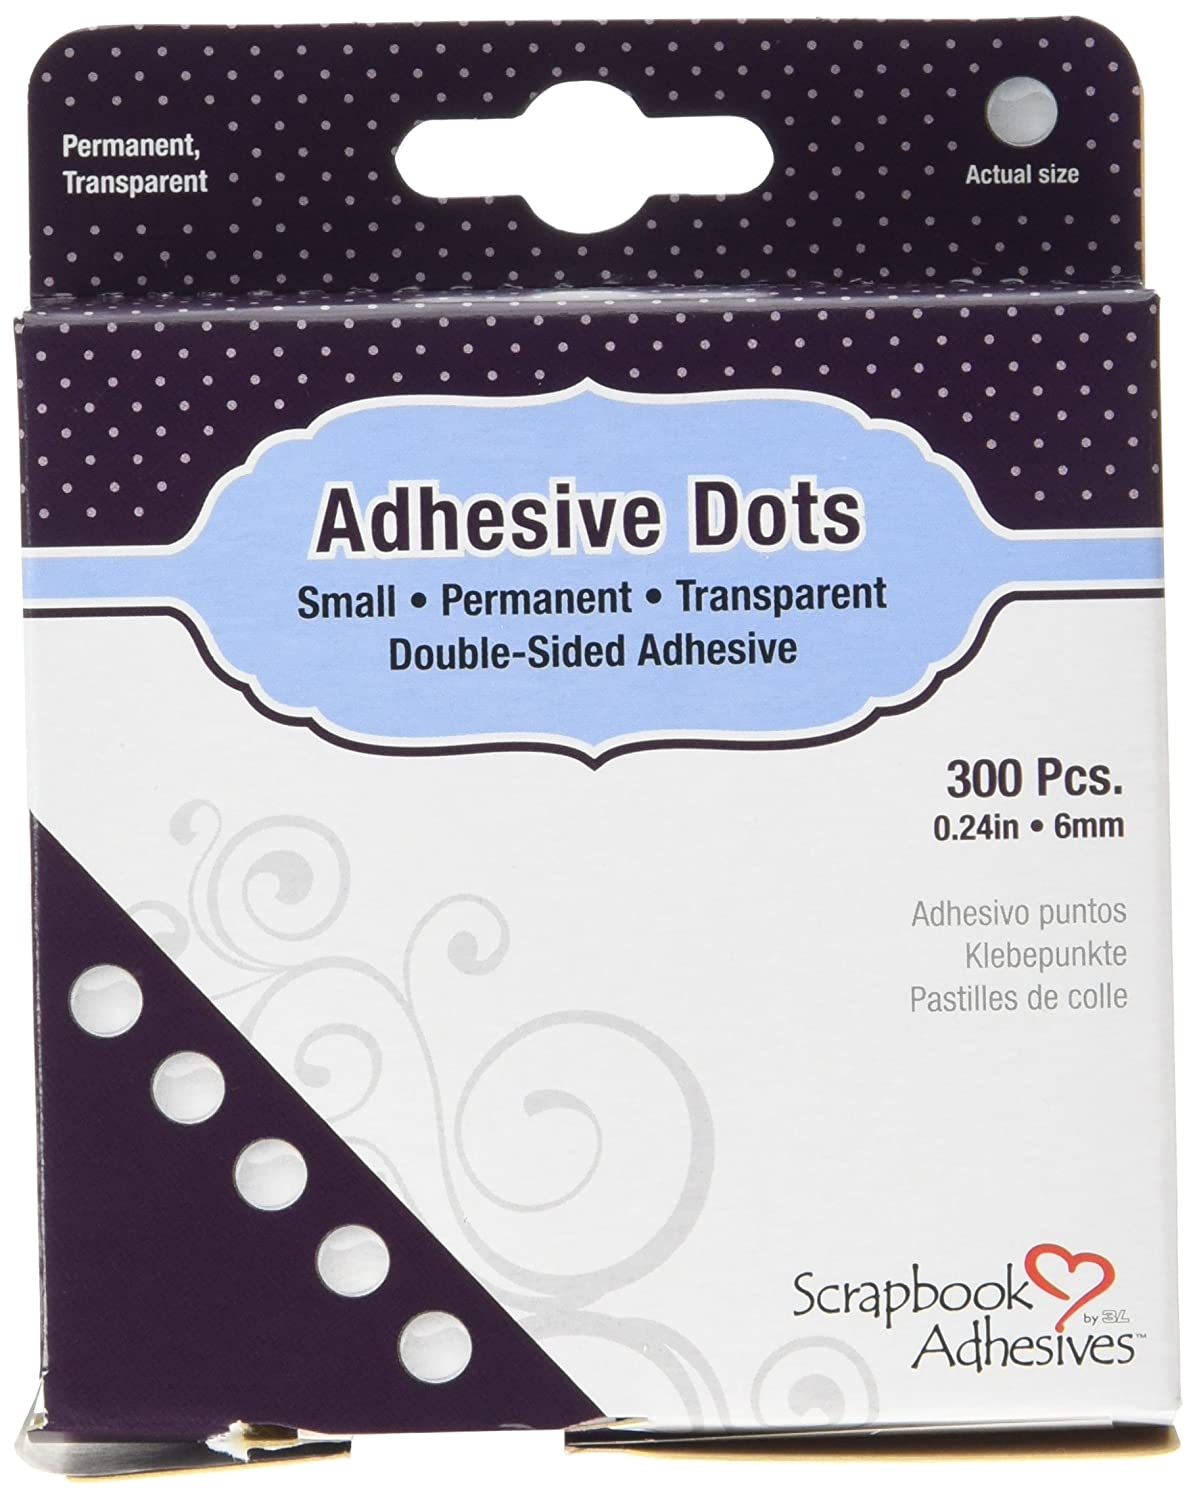 Scrapbook Adhesives by 3L Adhesive Dots Small